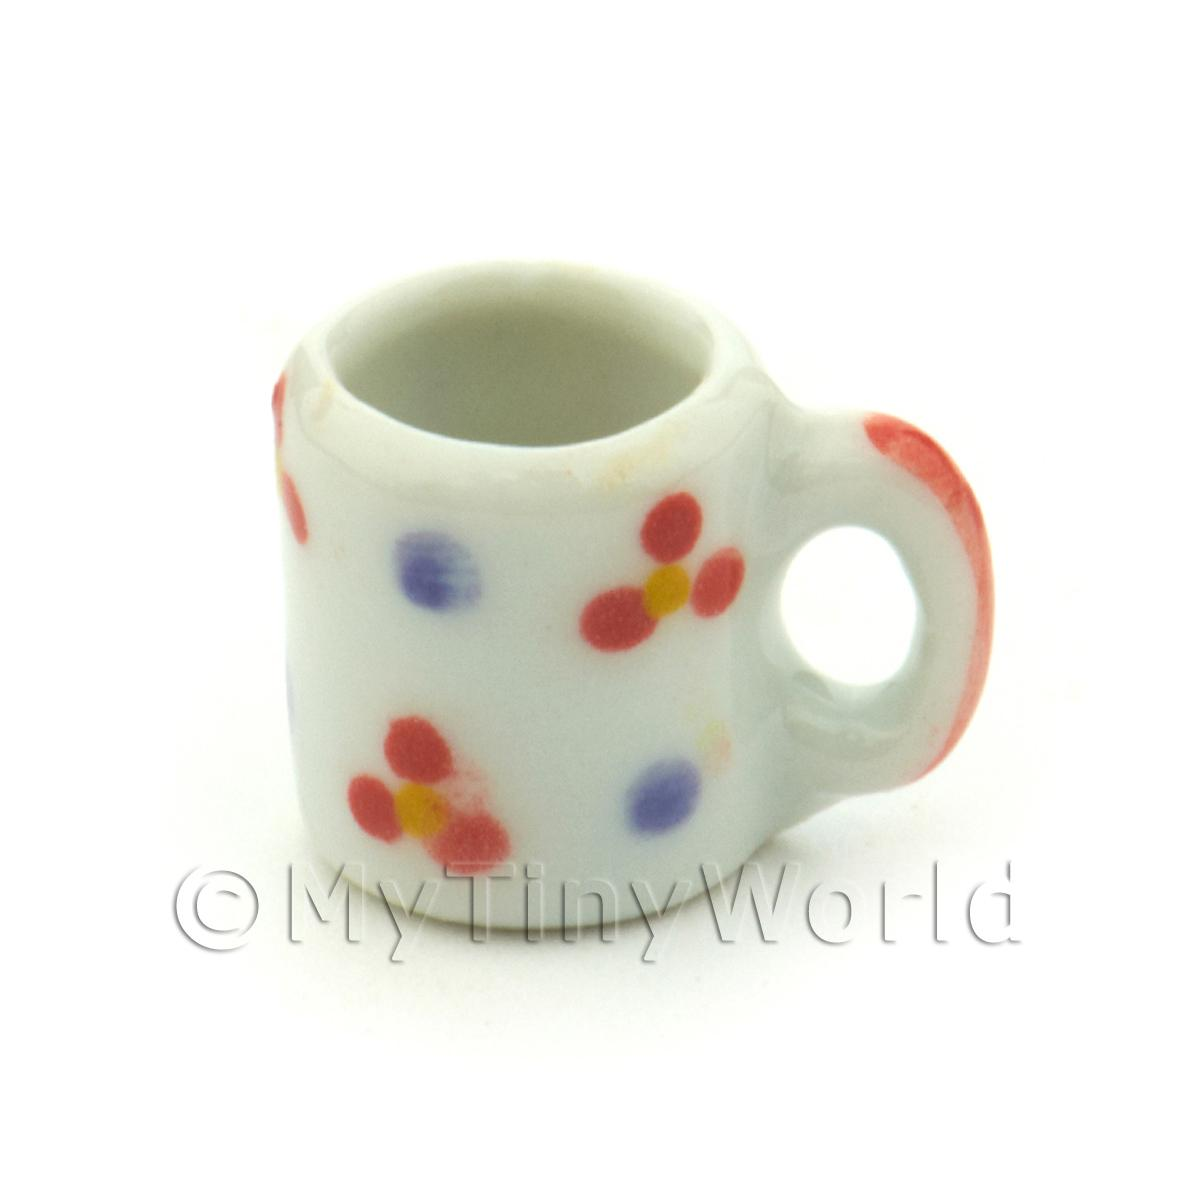 Dolls House Miniature Flower Design Ceramic Coffee Mug